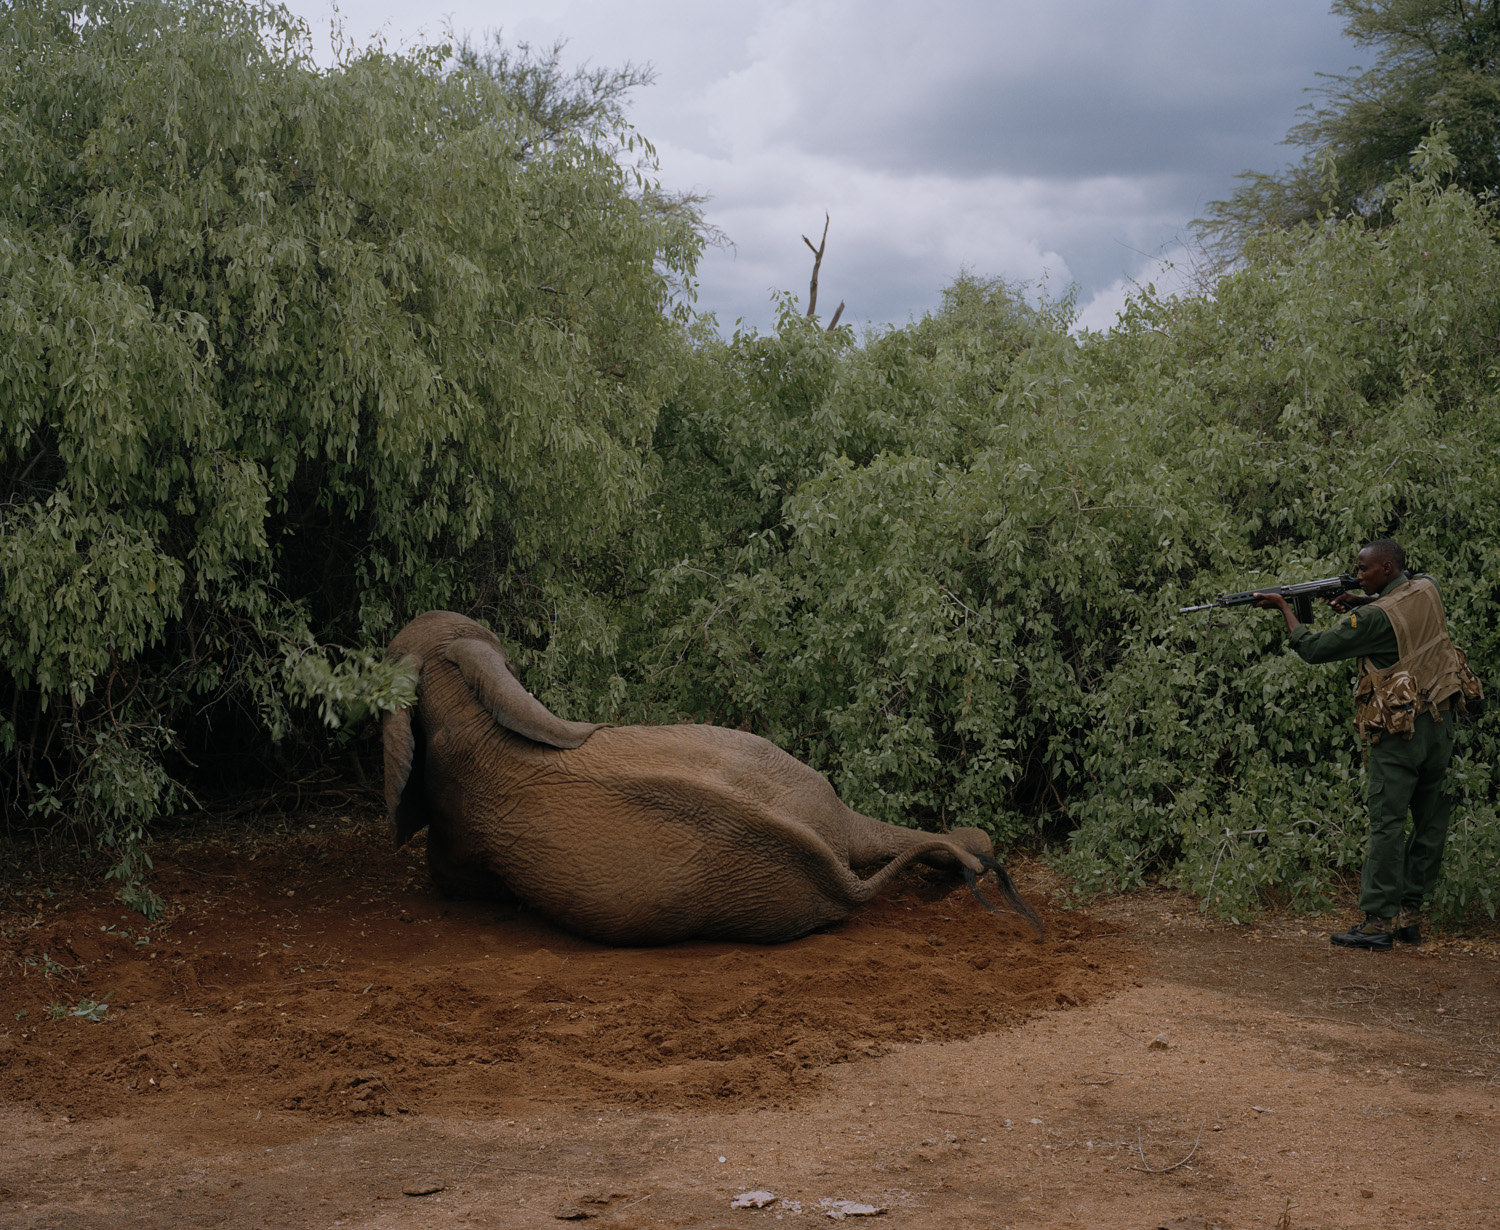 A Kenyan Wildlife service officer puts down a mortally wounded elephant that was shot, but managed to escape from poachers, Westgate Community Conservancy, Northern Kenya.